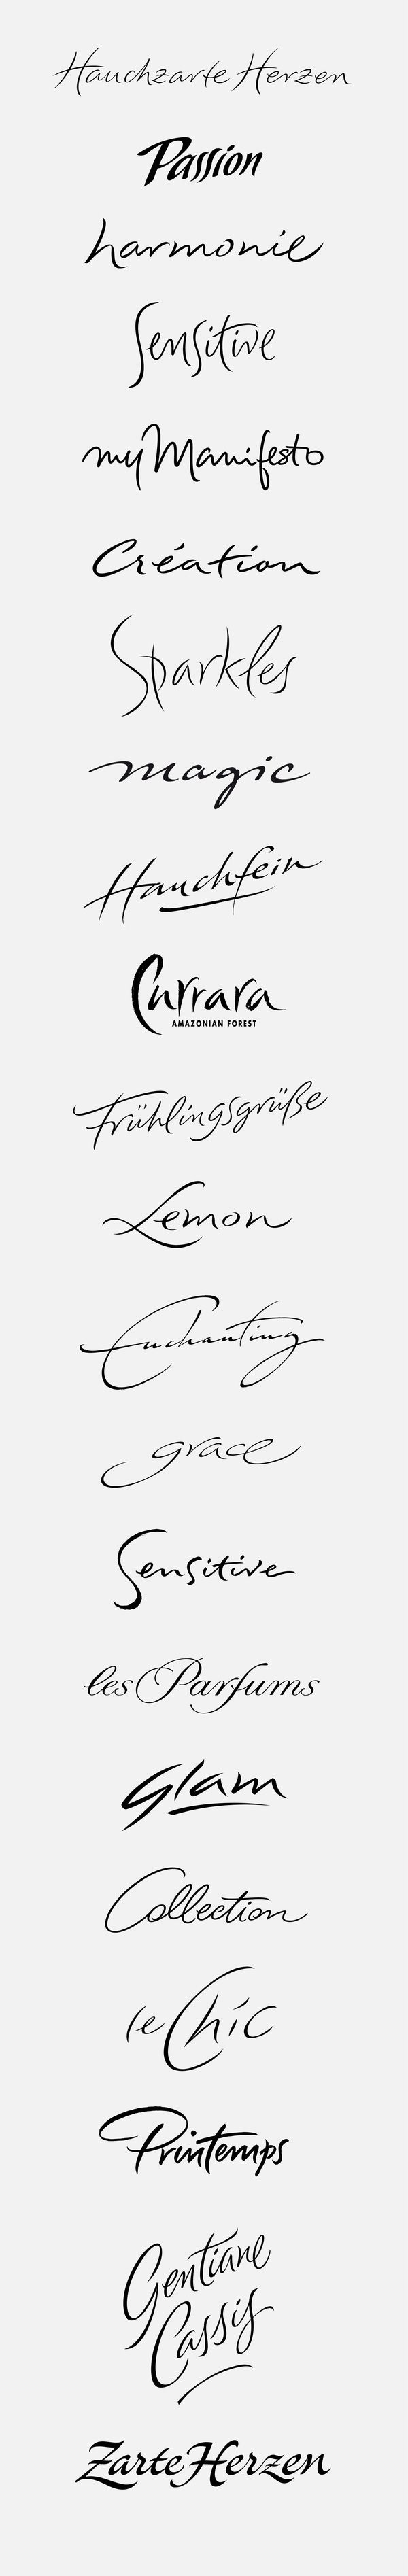 logotypes: emotional, sensual by Peter Becker, via Behance  http://www.arcreactions.com/graphic-design-advanced-paramedics-ltd/